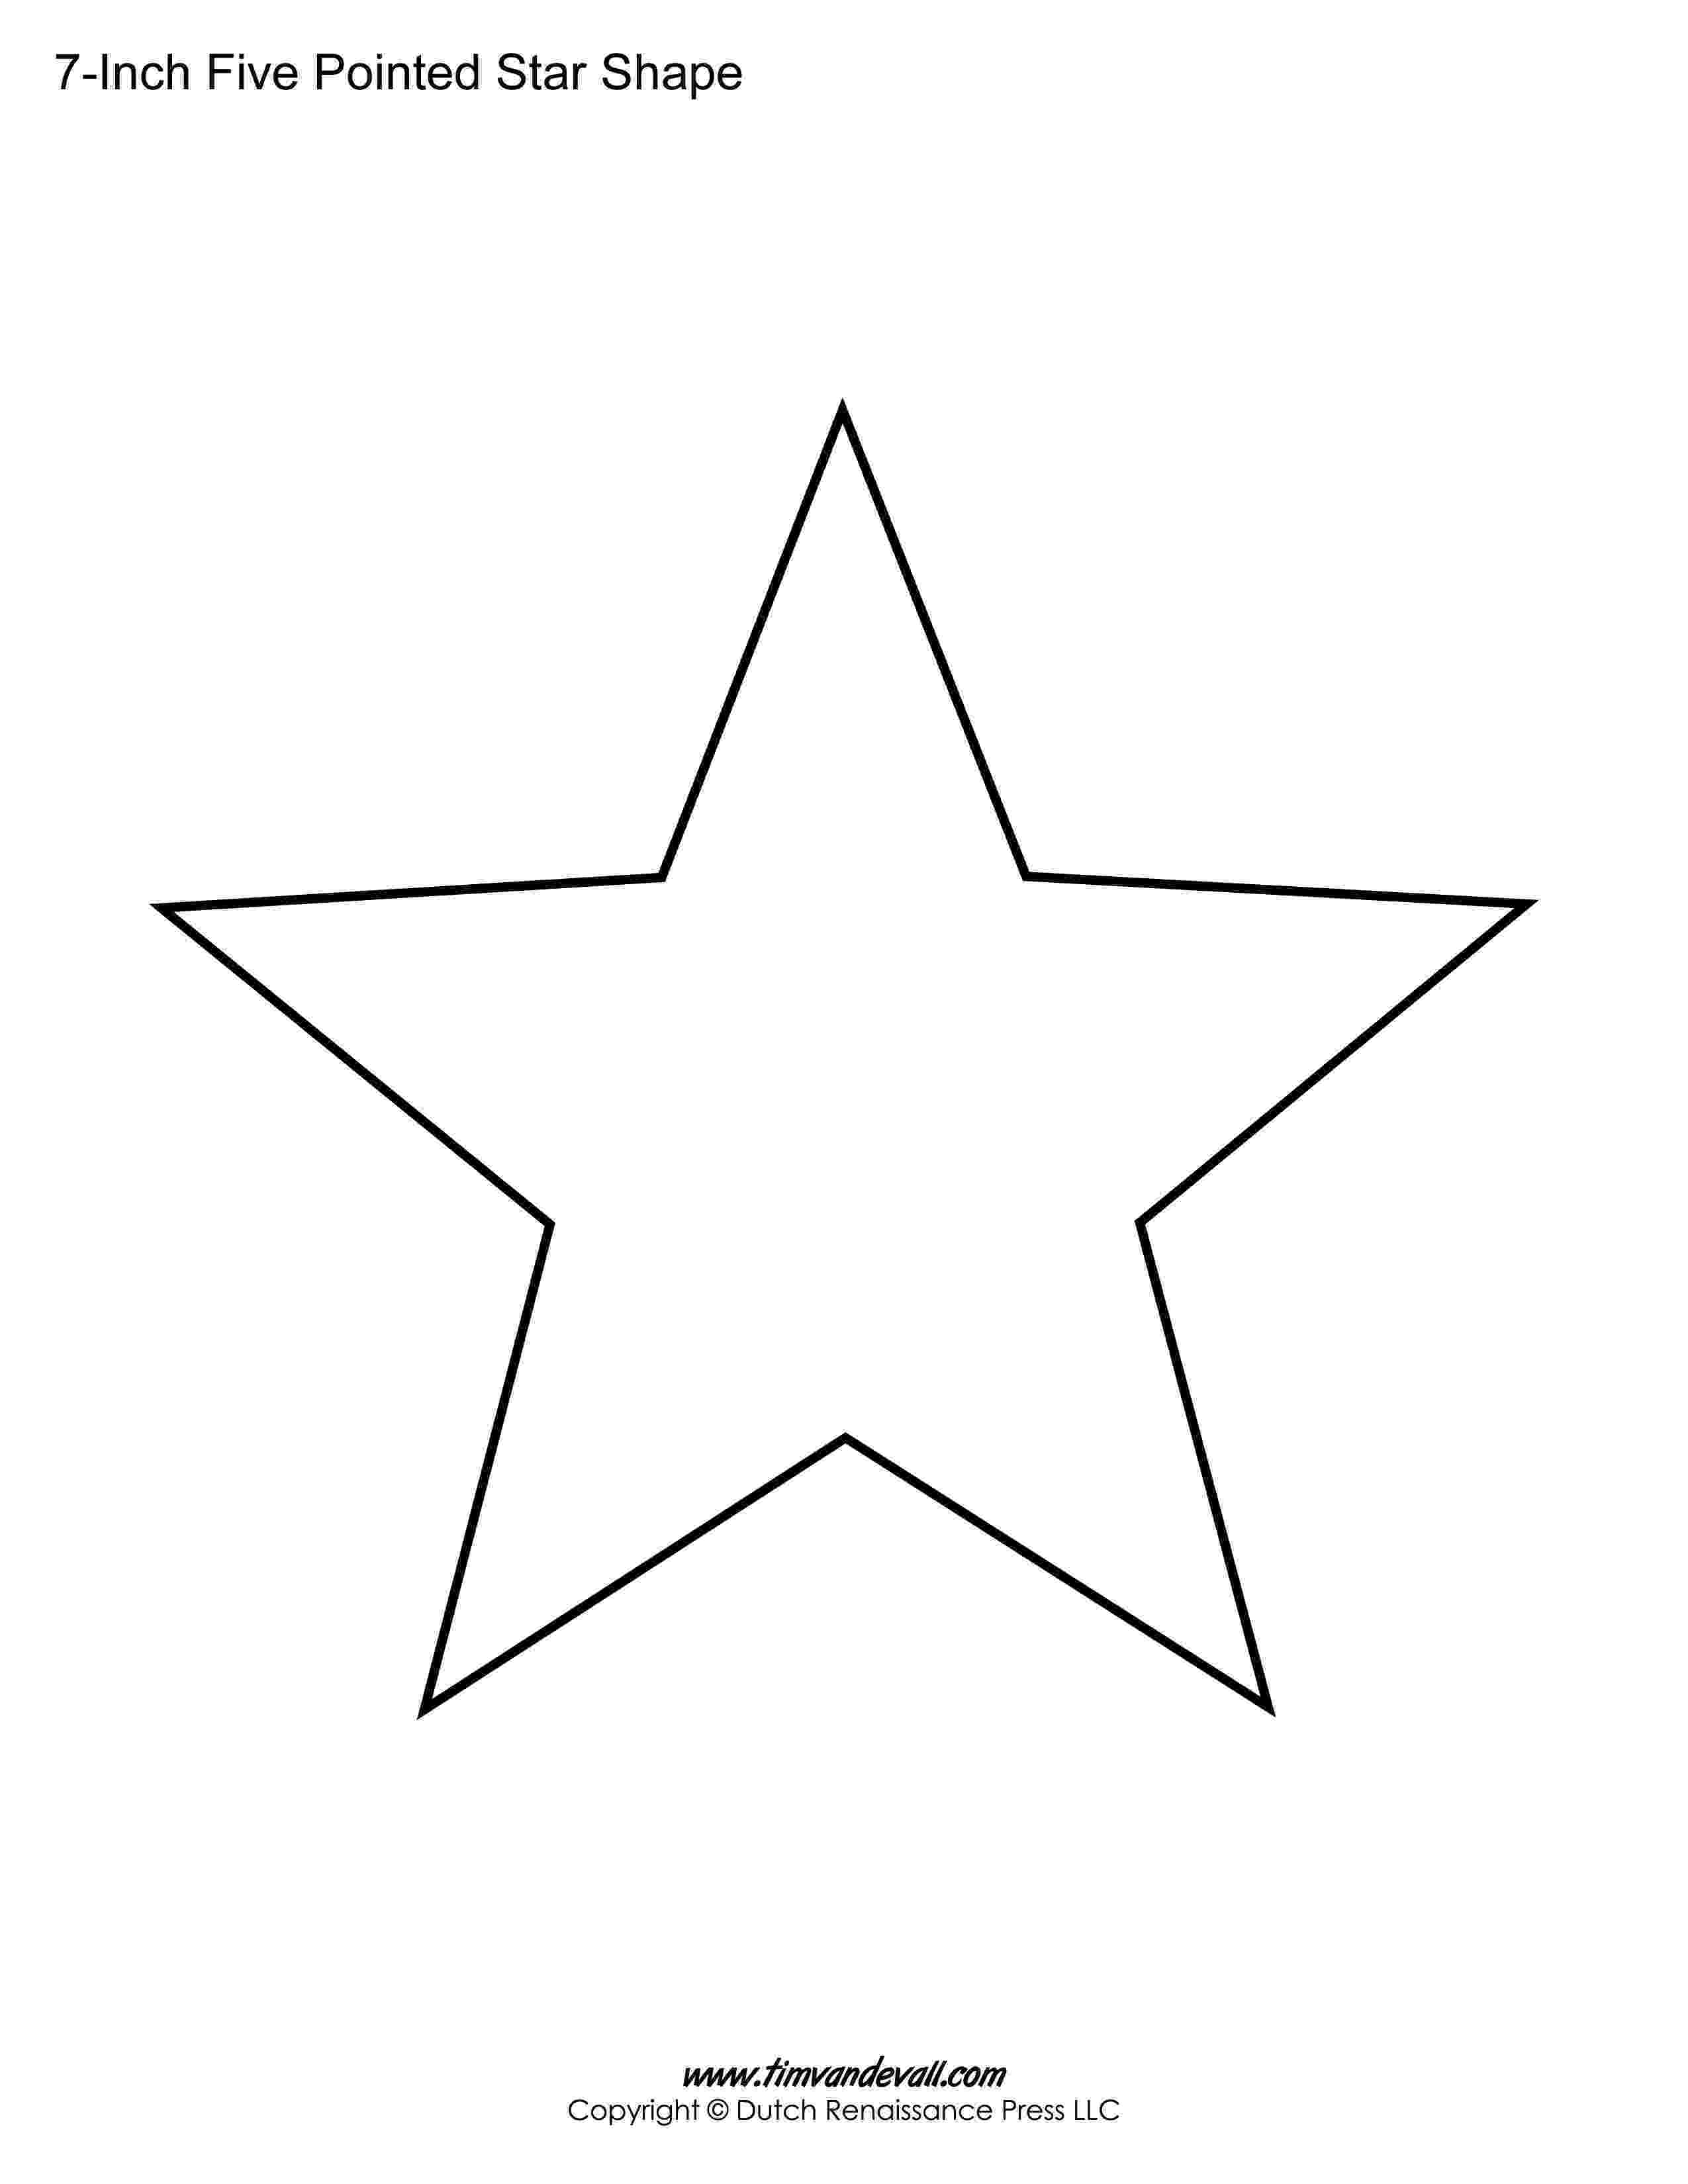 printable star free printable star templates for your art projects use star printable